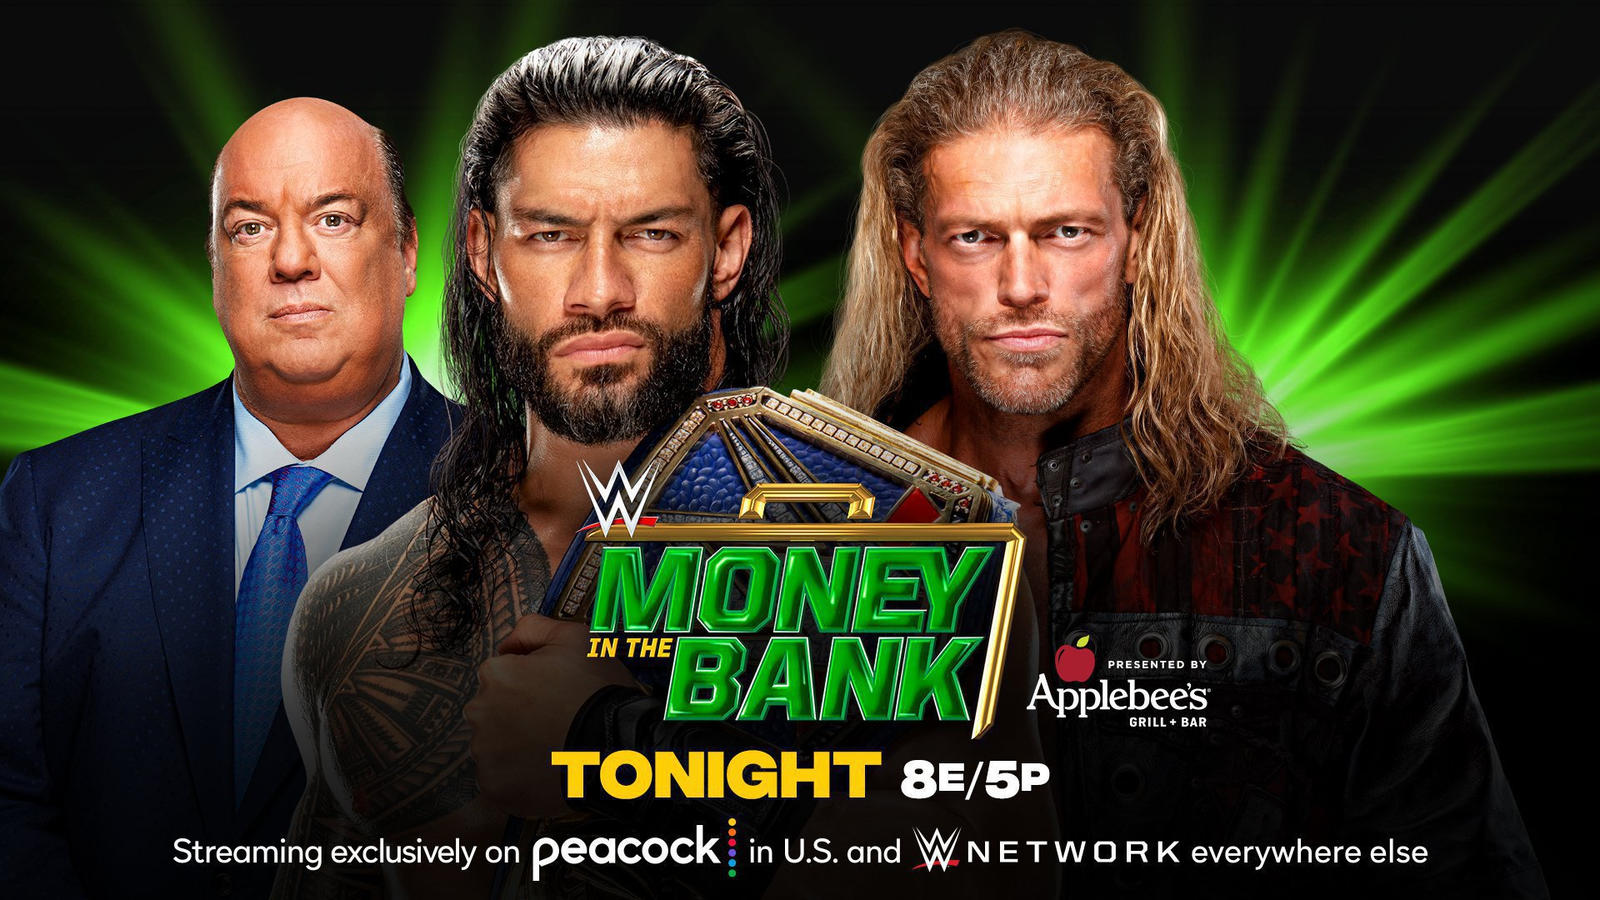 Roman Reigns And Edge Hype WWE Money In The Bank Match